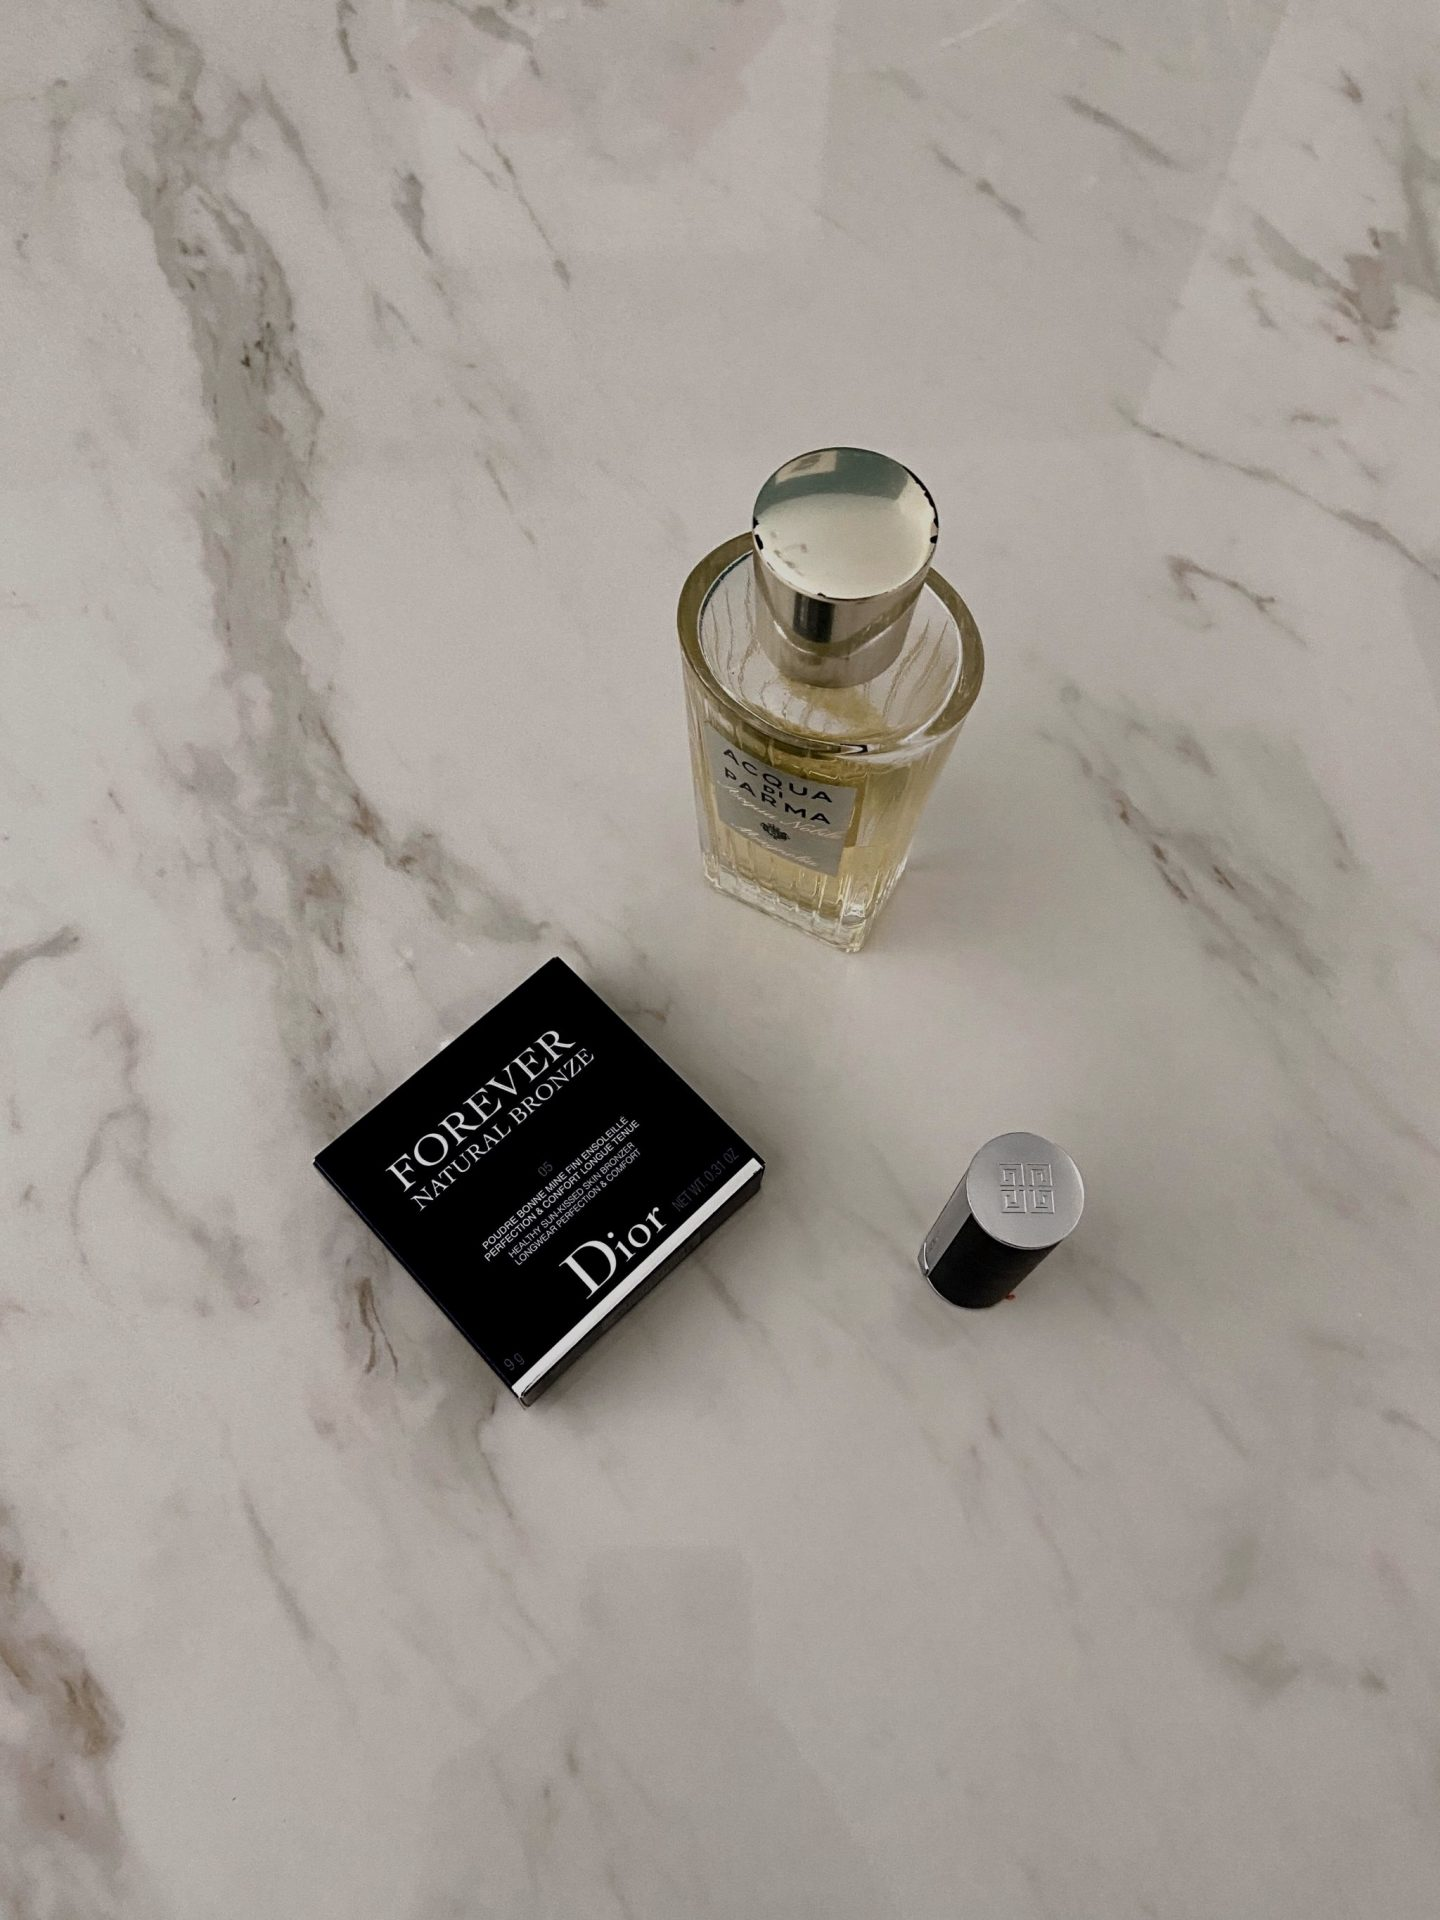 Luxury makeup items I will invest in over and over again without hesitation.